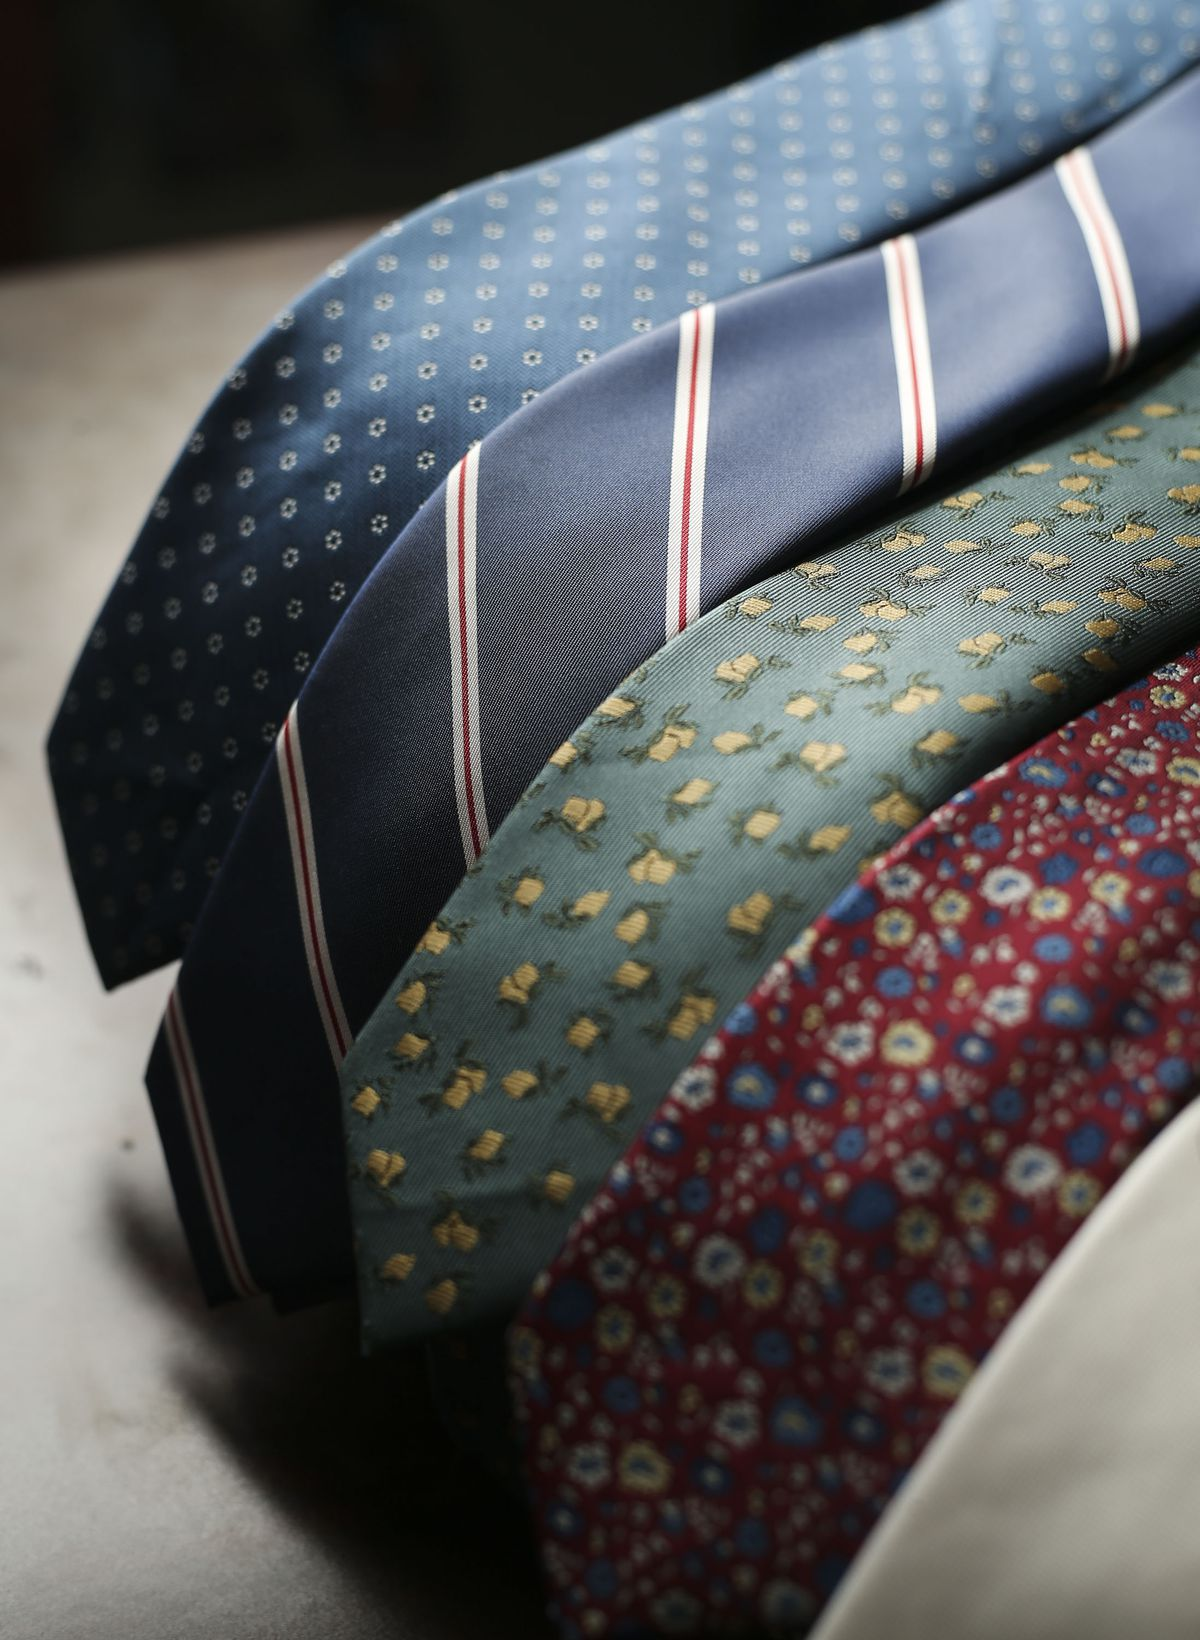 Men's ties that are made out of recycled plastic are displayed at &Collar in Salt Lake City on Thursday, April 8, 2021.